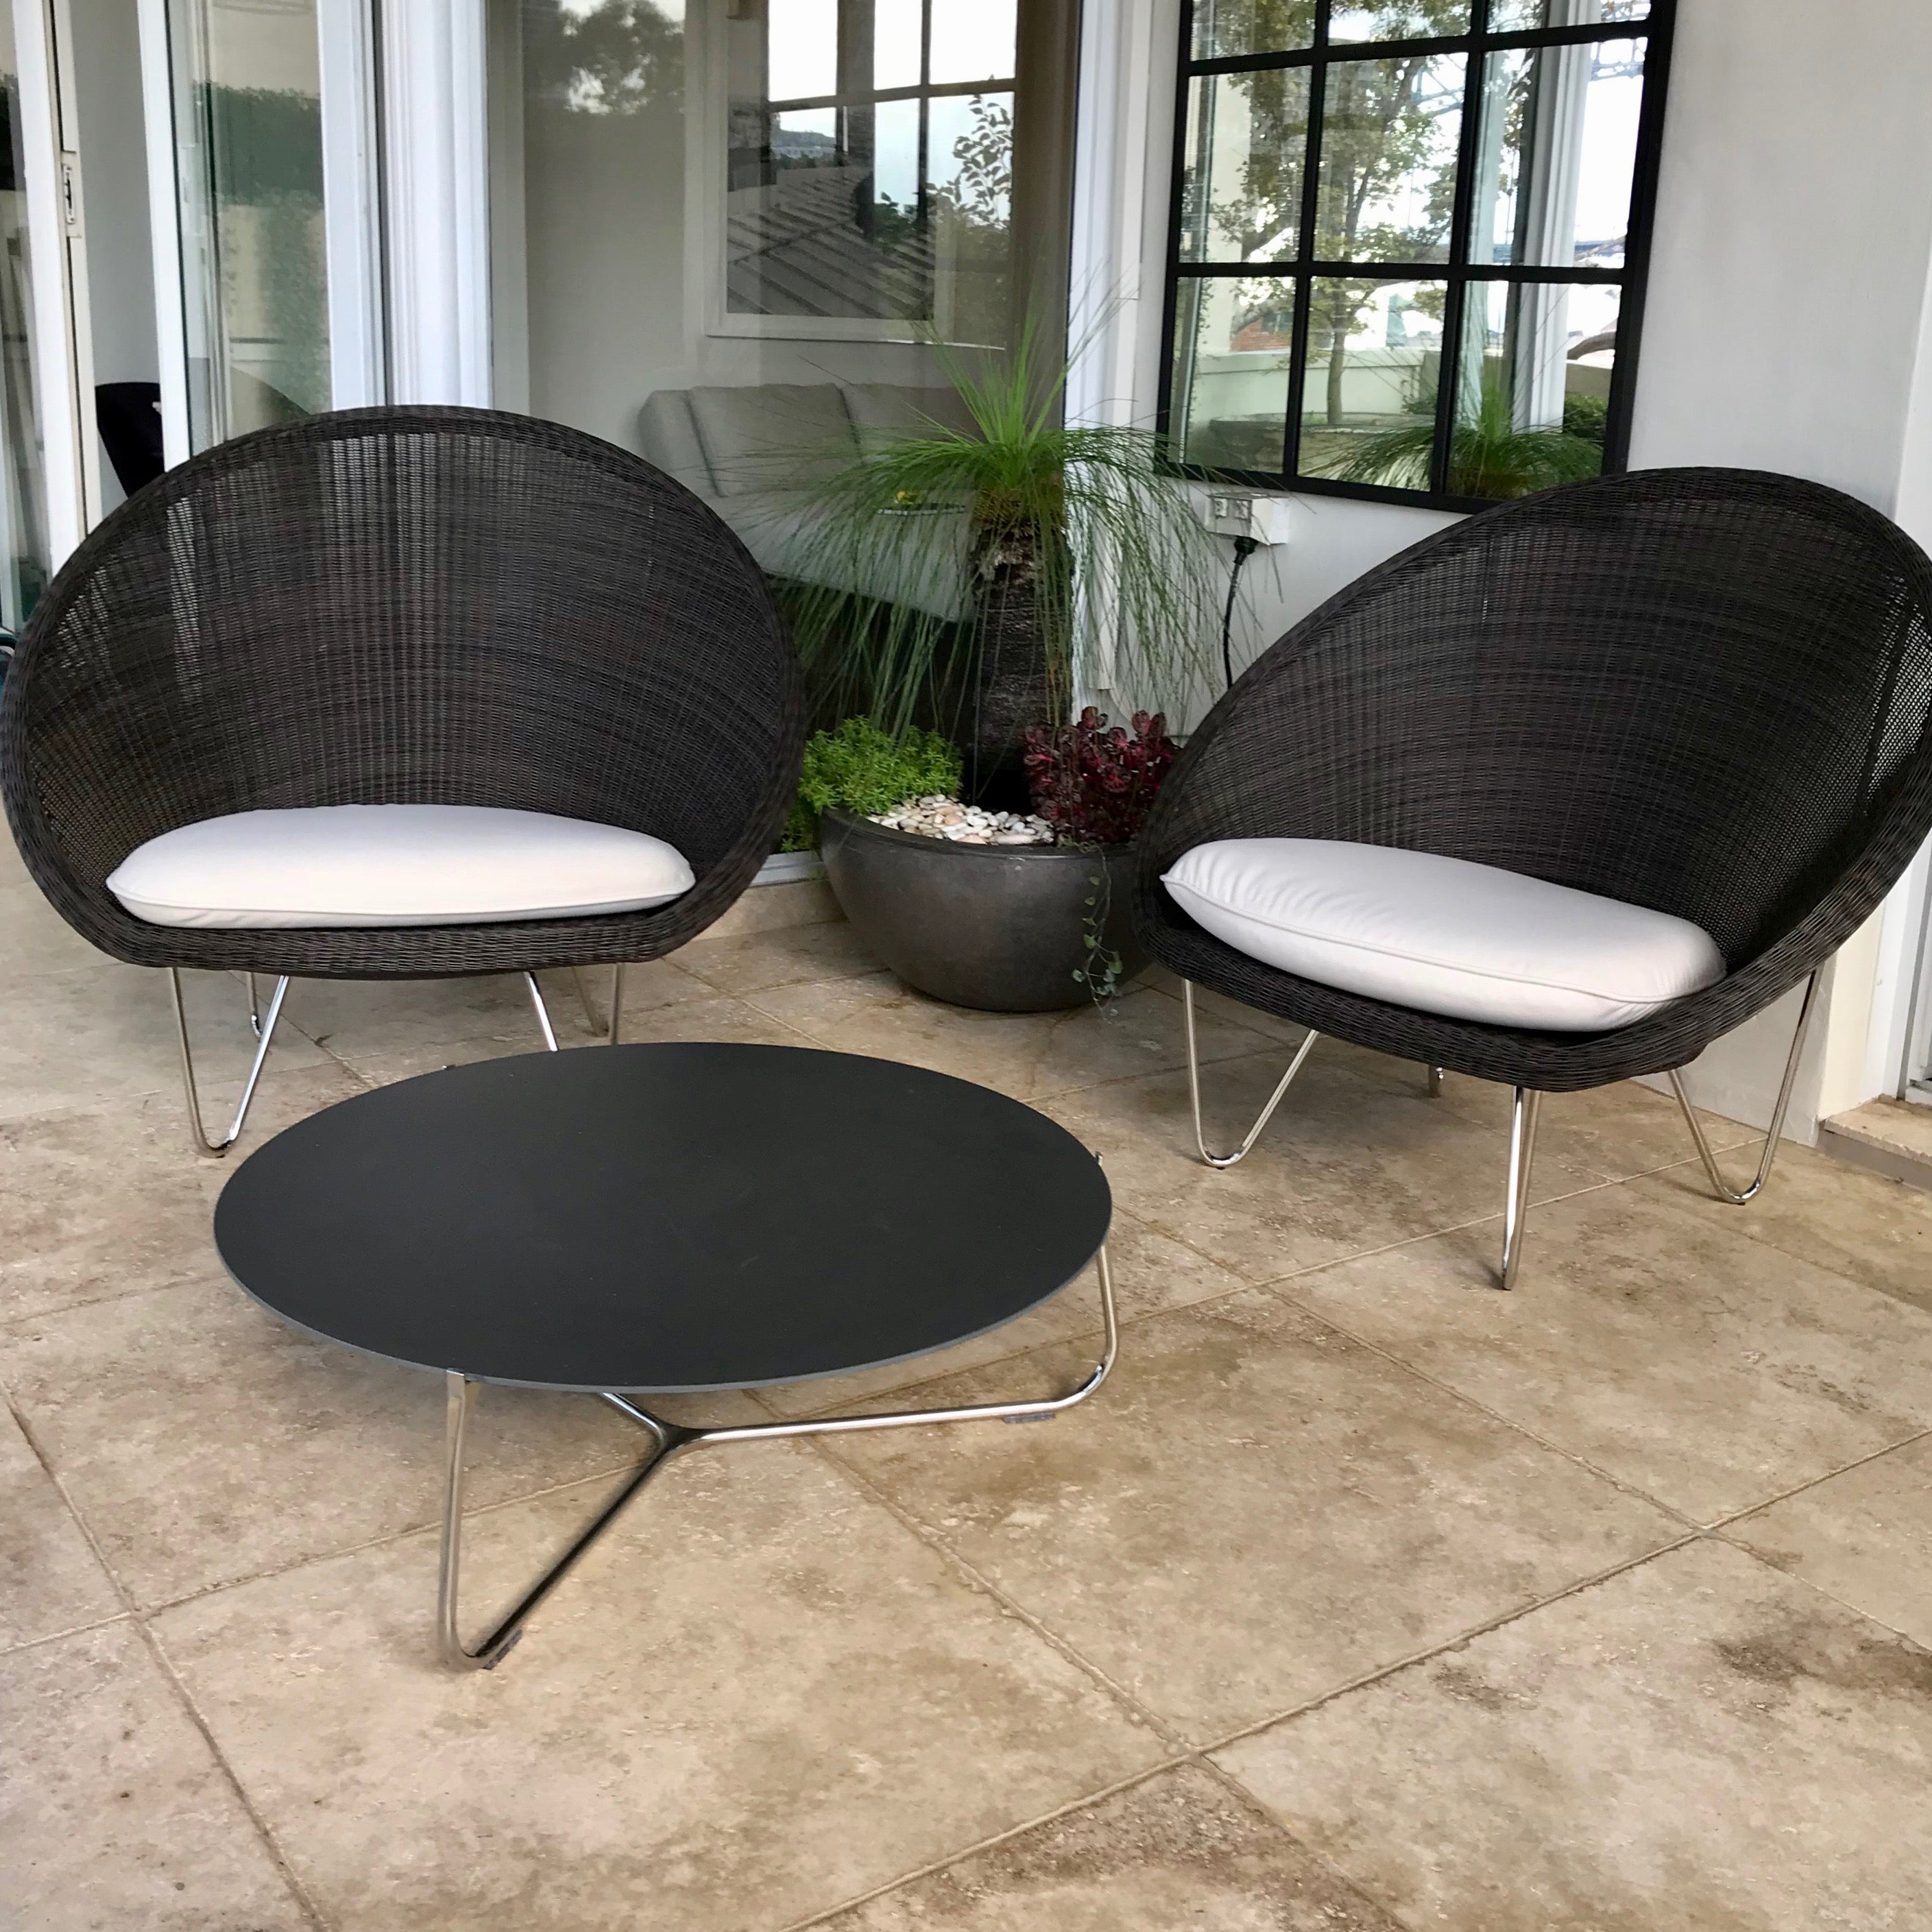 Cocoon Indoor / Outdoor Chair by Vincent Sheppard (2 available)